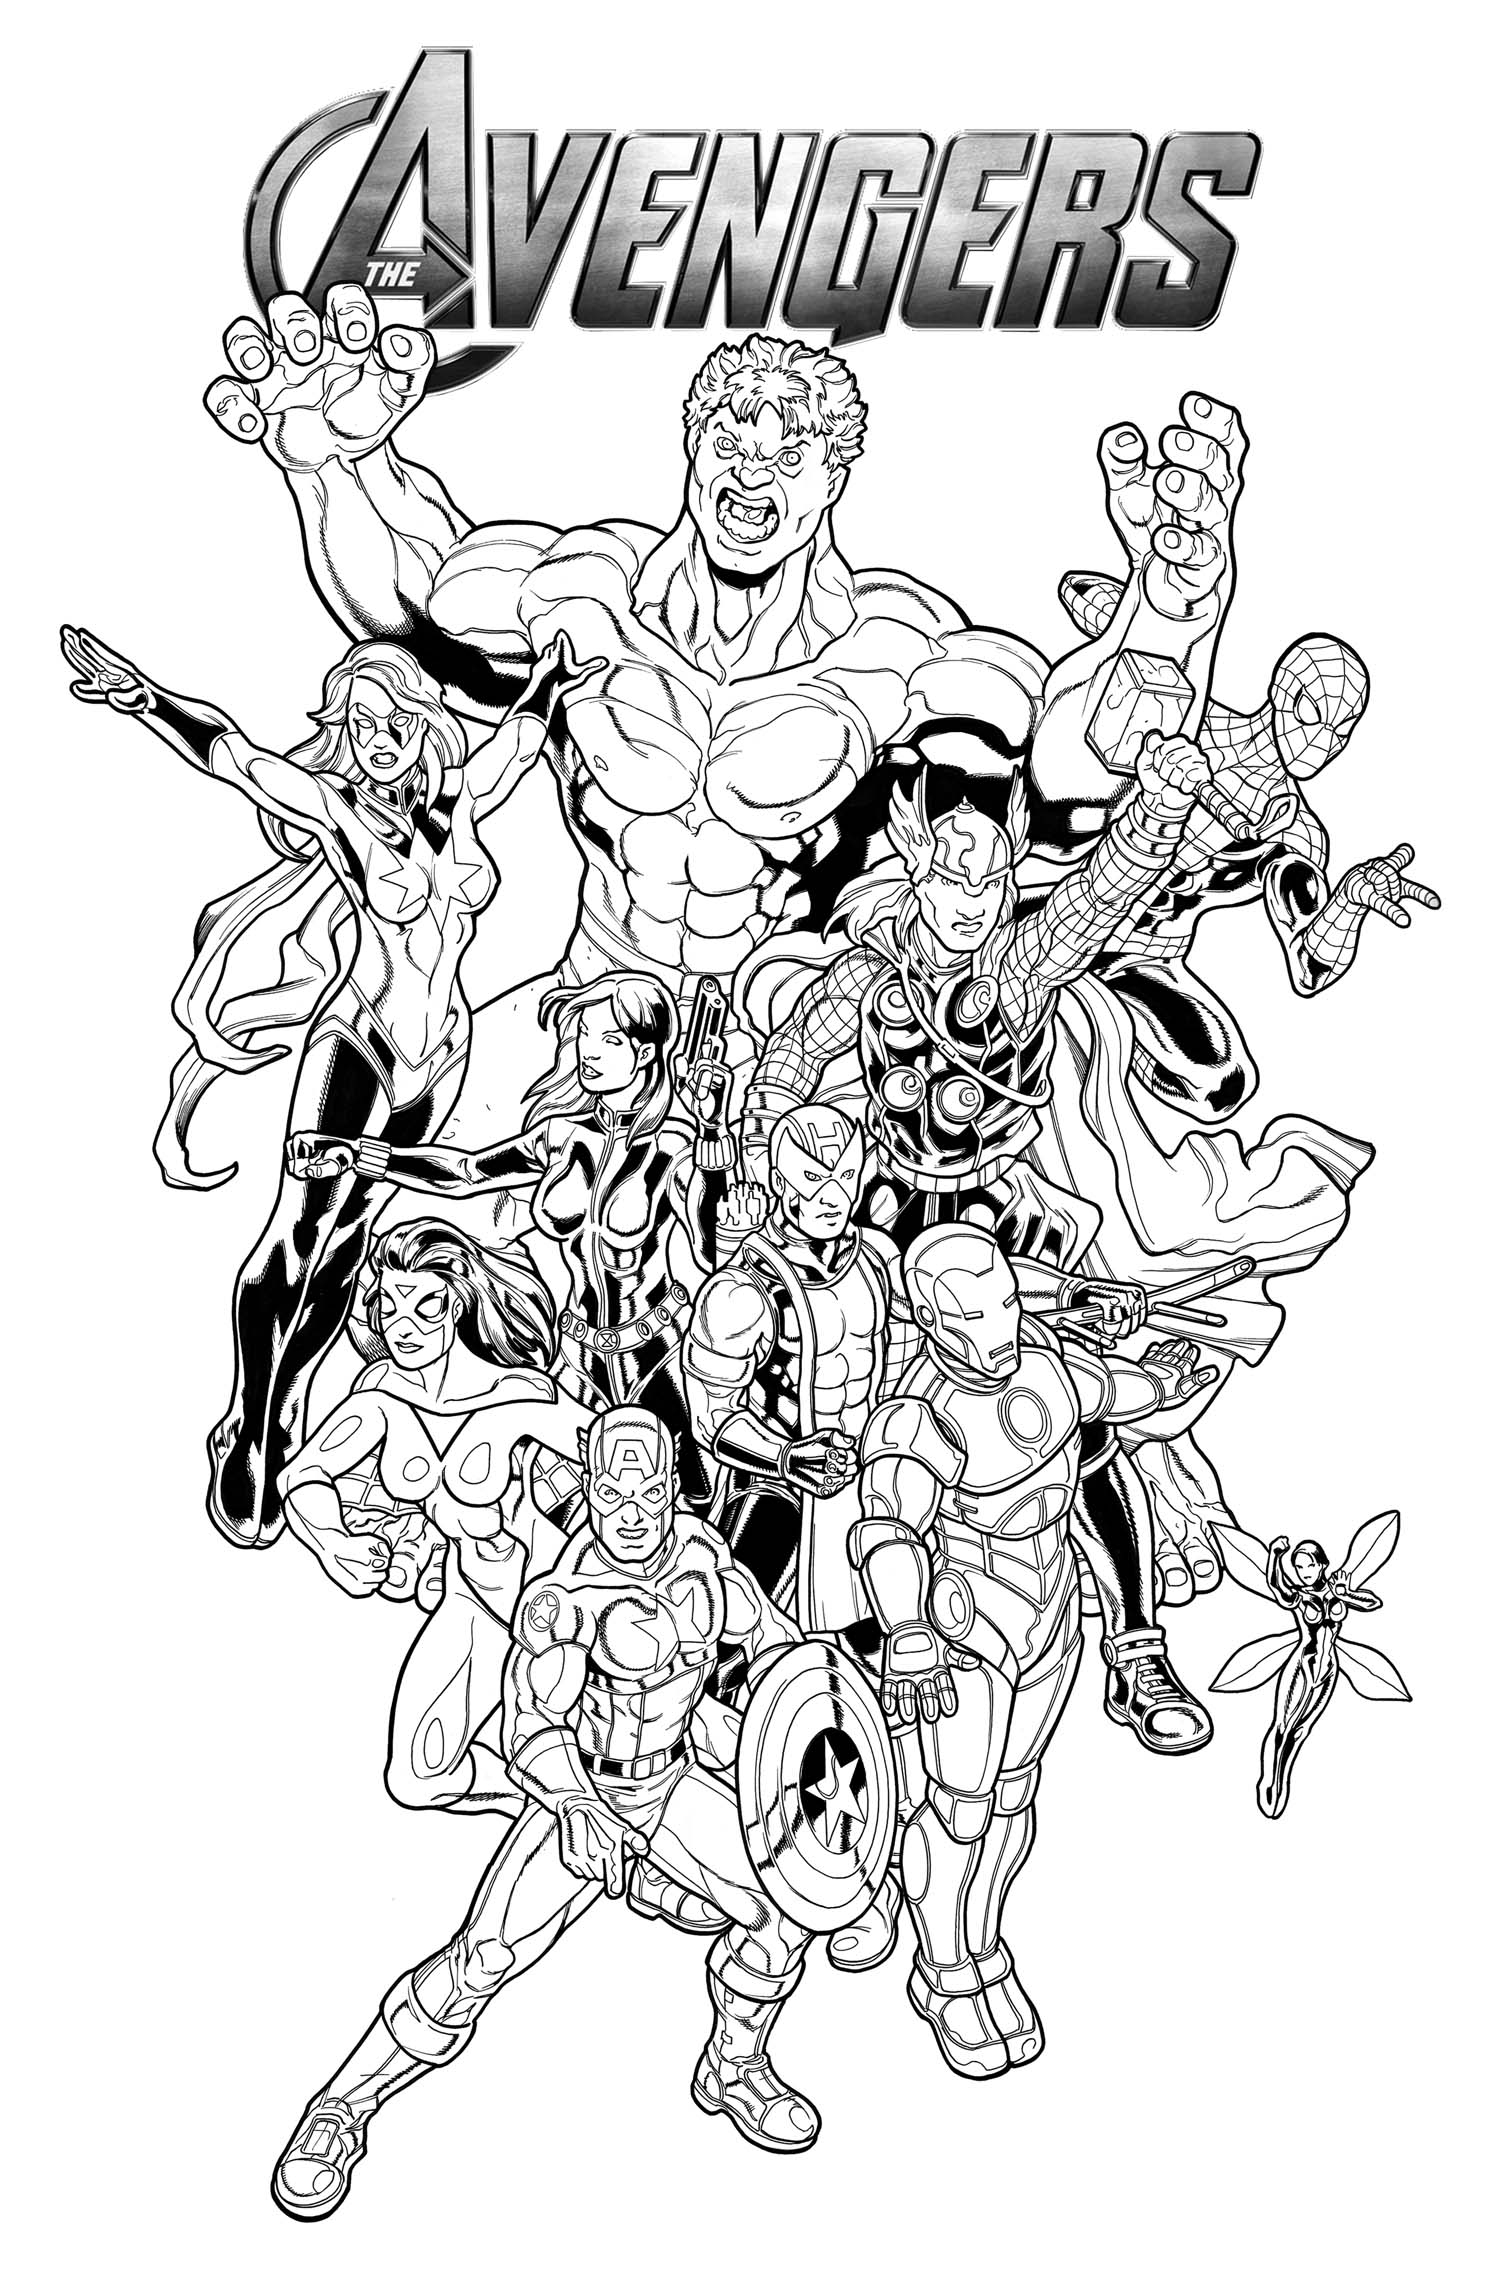 Printable Coloring Pages Superheroes for Peterrabbit Coloring Pages Printable Of Superheroes Printable Coloring Pages Gidiyedformapolitica Download